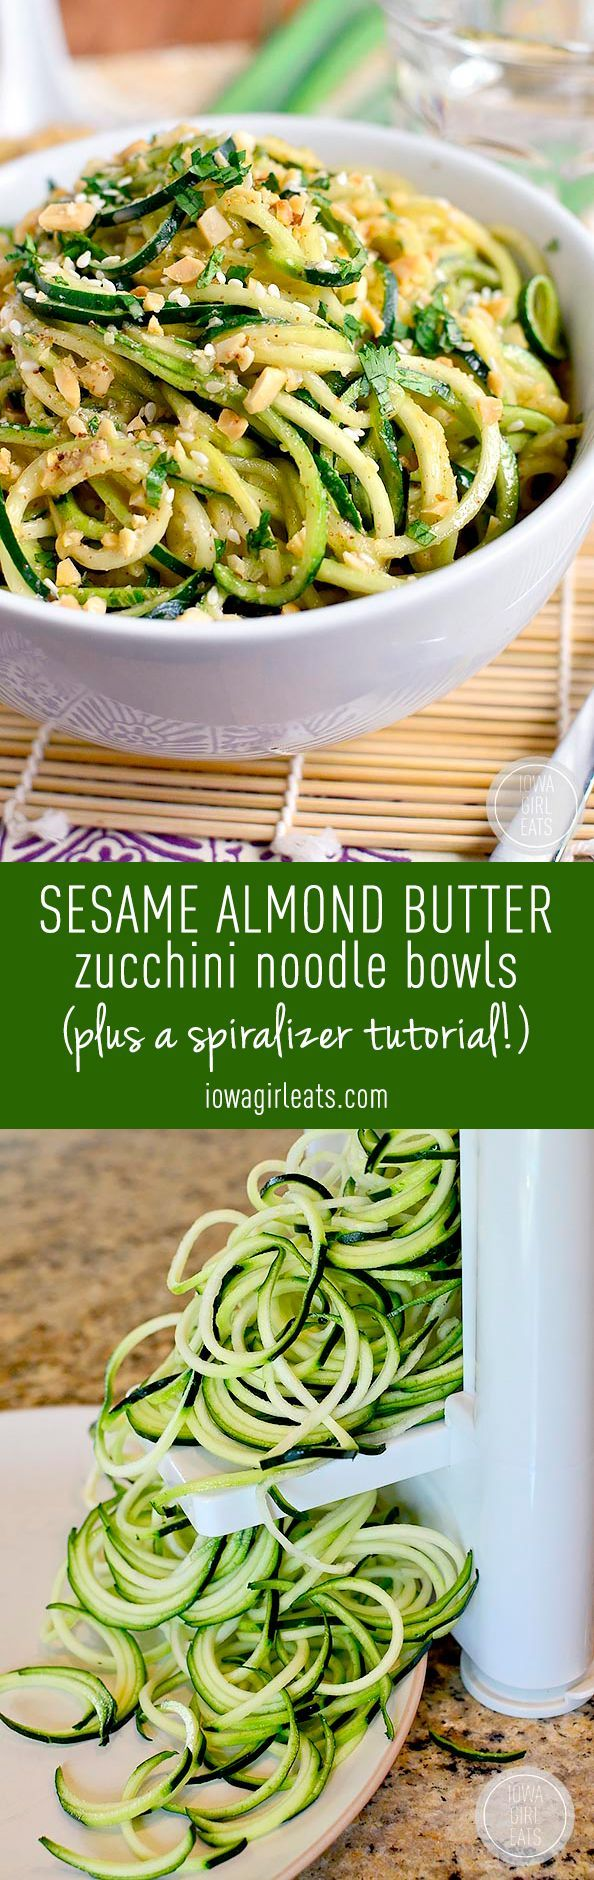 Trying to eat clean? Try this delicious recipe for Sesame Almond Butter Zucchini Noodle Bowls